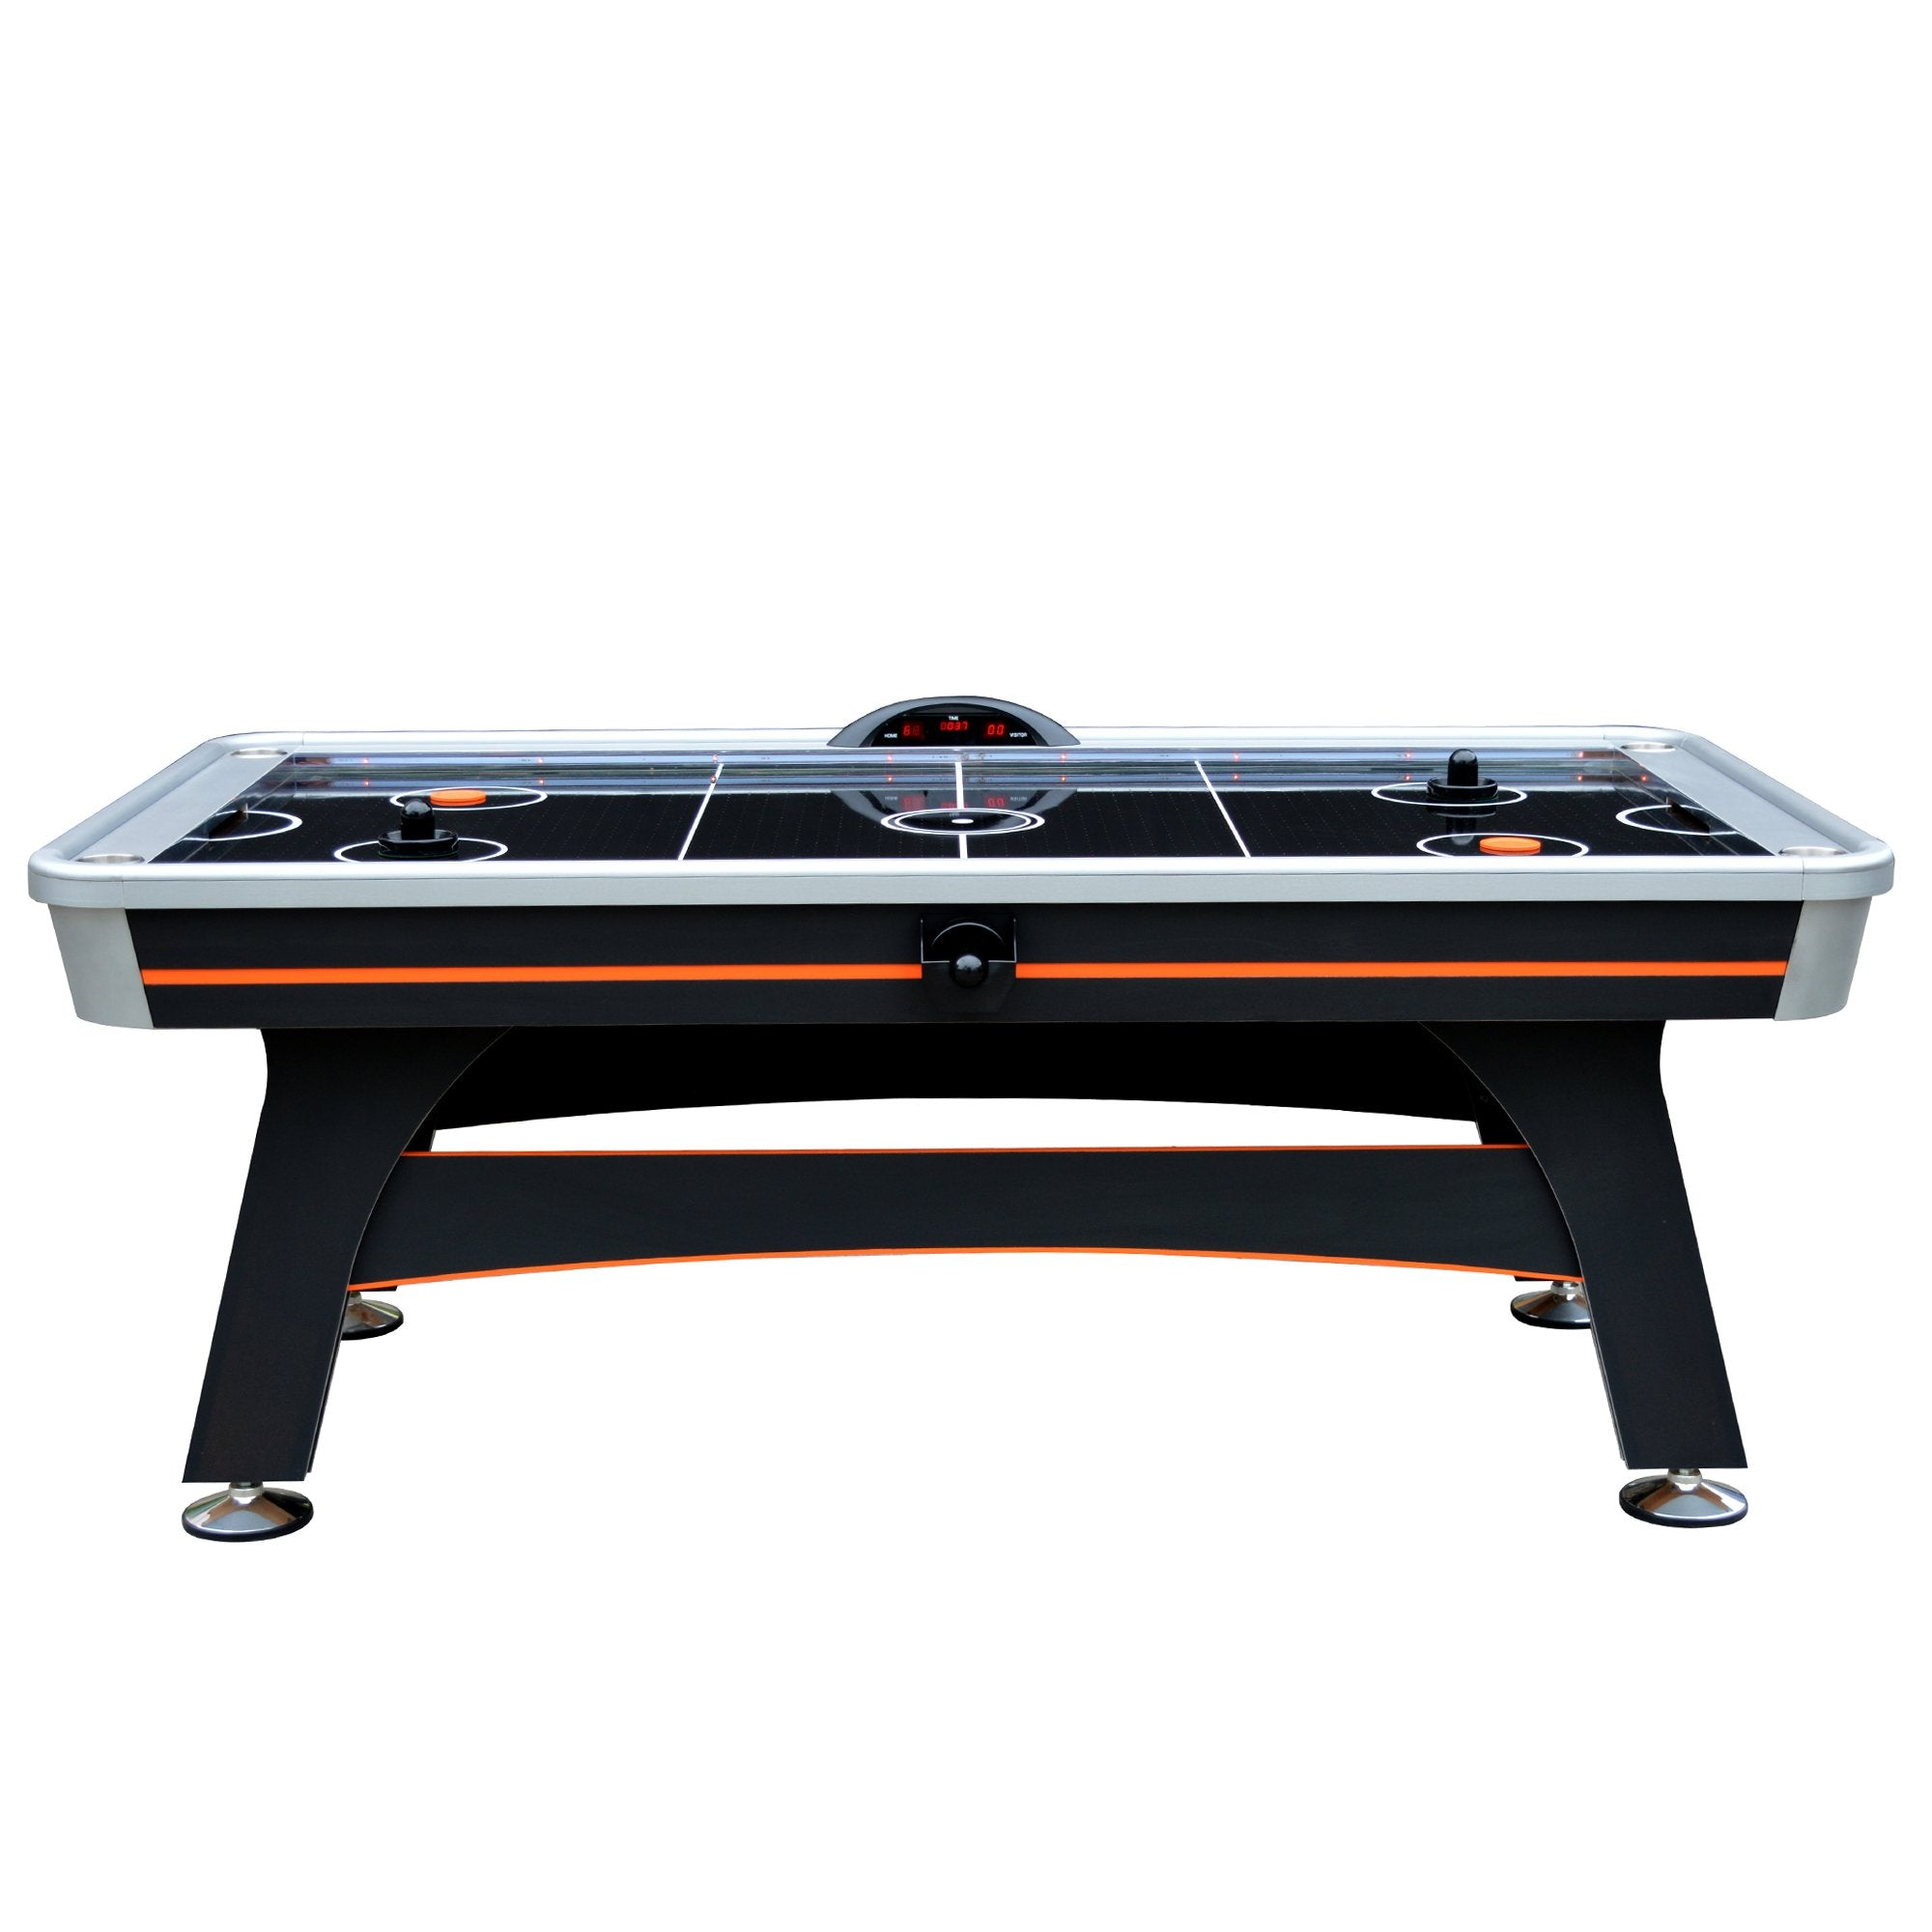 Hathaway Trailblazer 7ft Air Hockey Table - Gaming Blaze